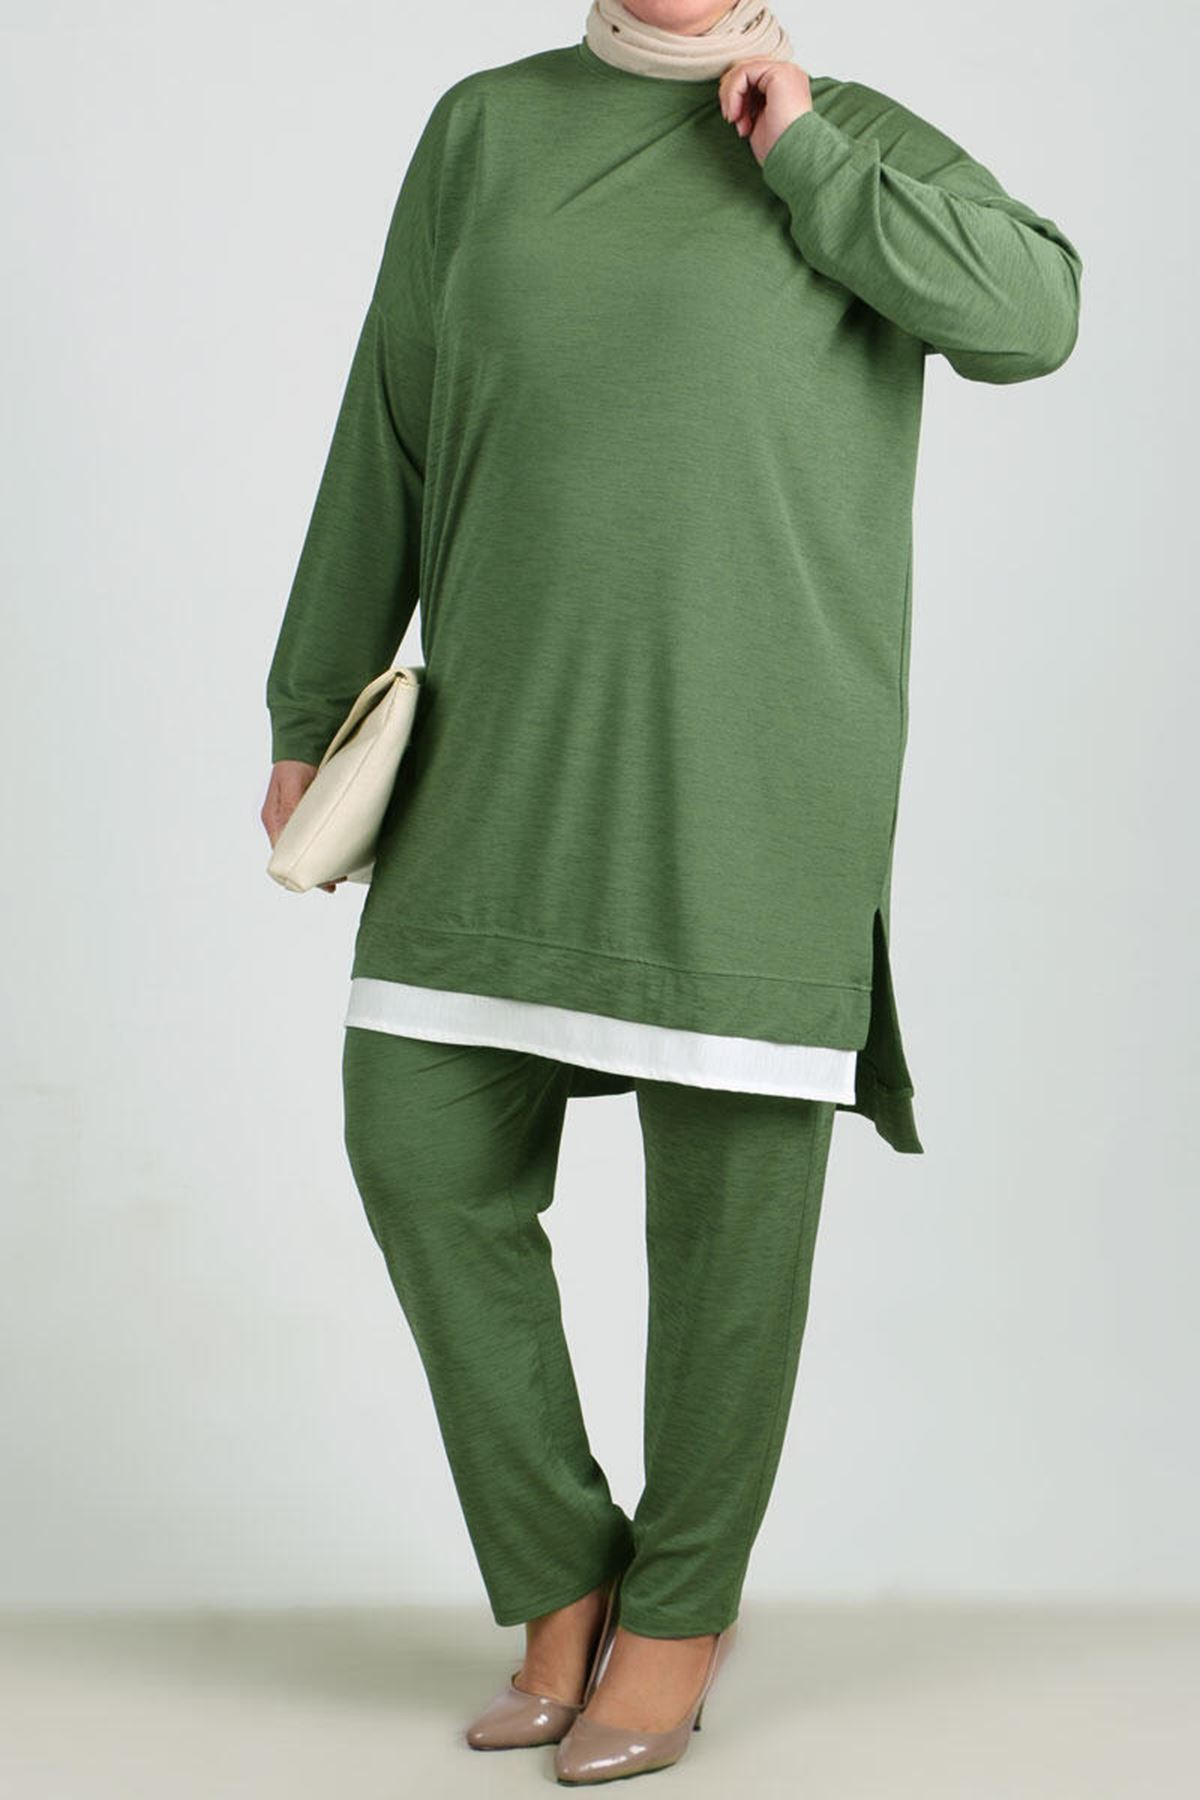 7677 Plus Size Garnished Two Piece Set with Tunic and Pants- Khaki